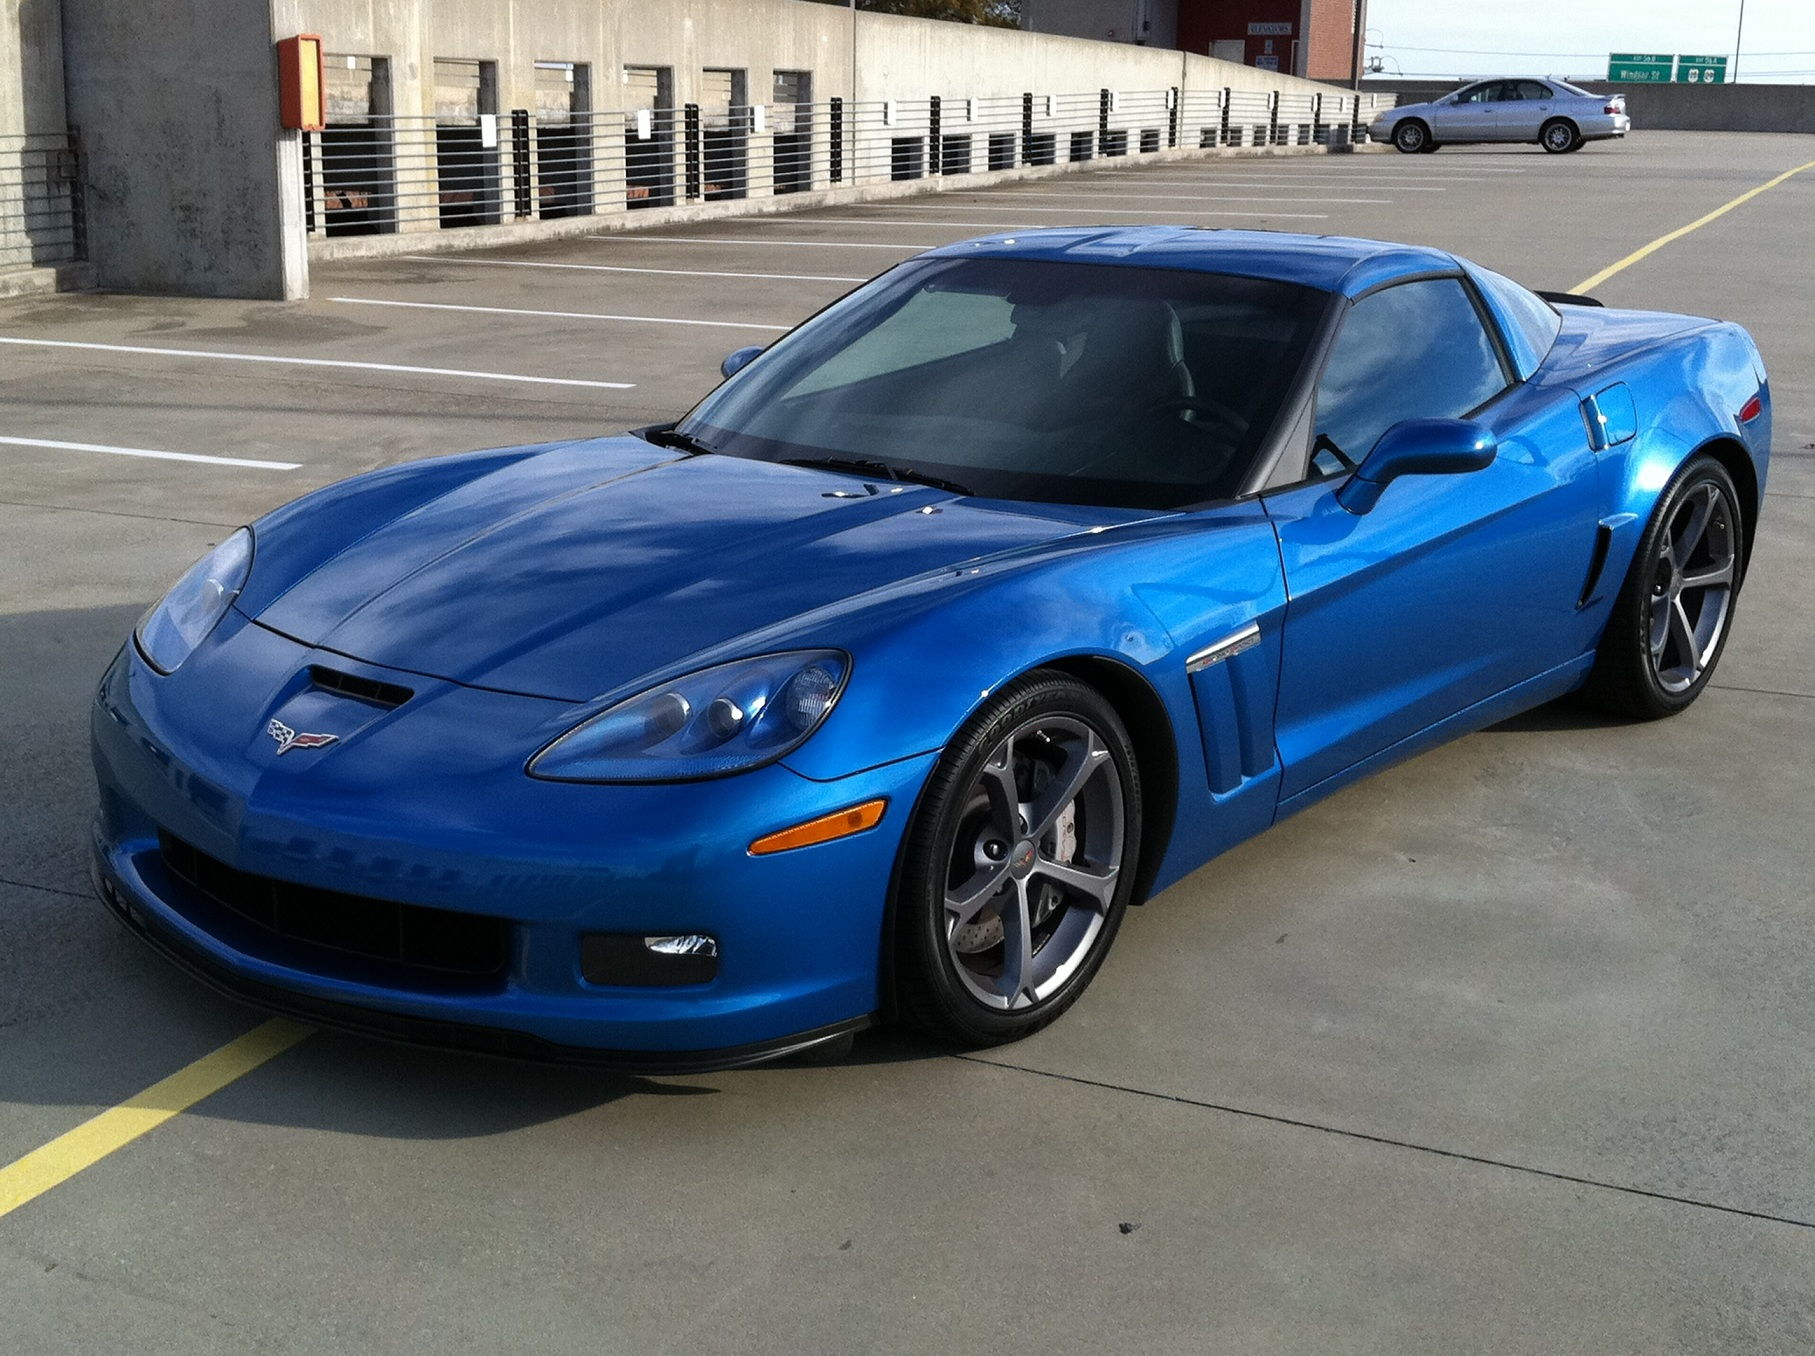 fs for sale 2010 corvette grand sport 6spd manual in jetstream blue lt1 with 31k miles. Black Bedroom Furniture Sets. Home Design Ideas